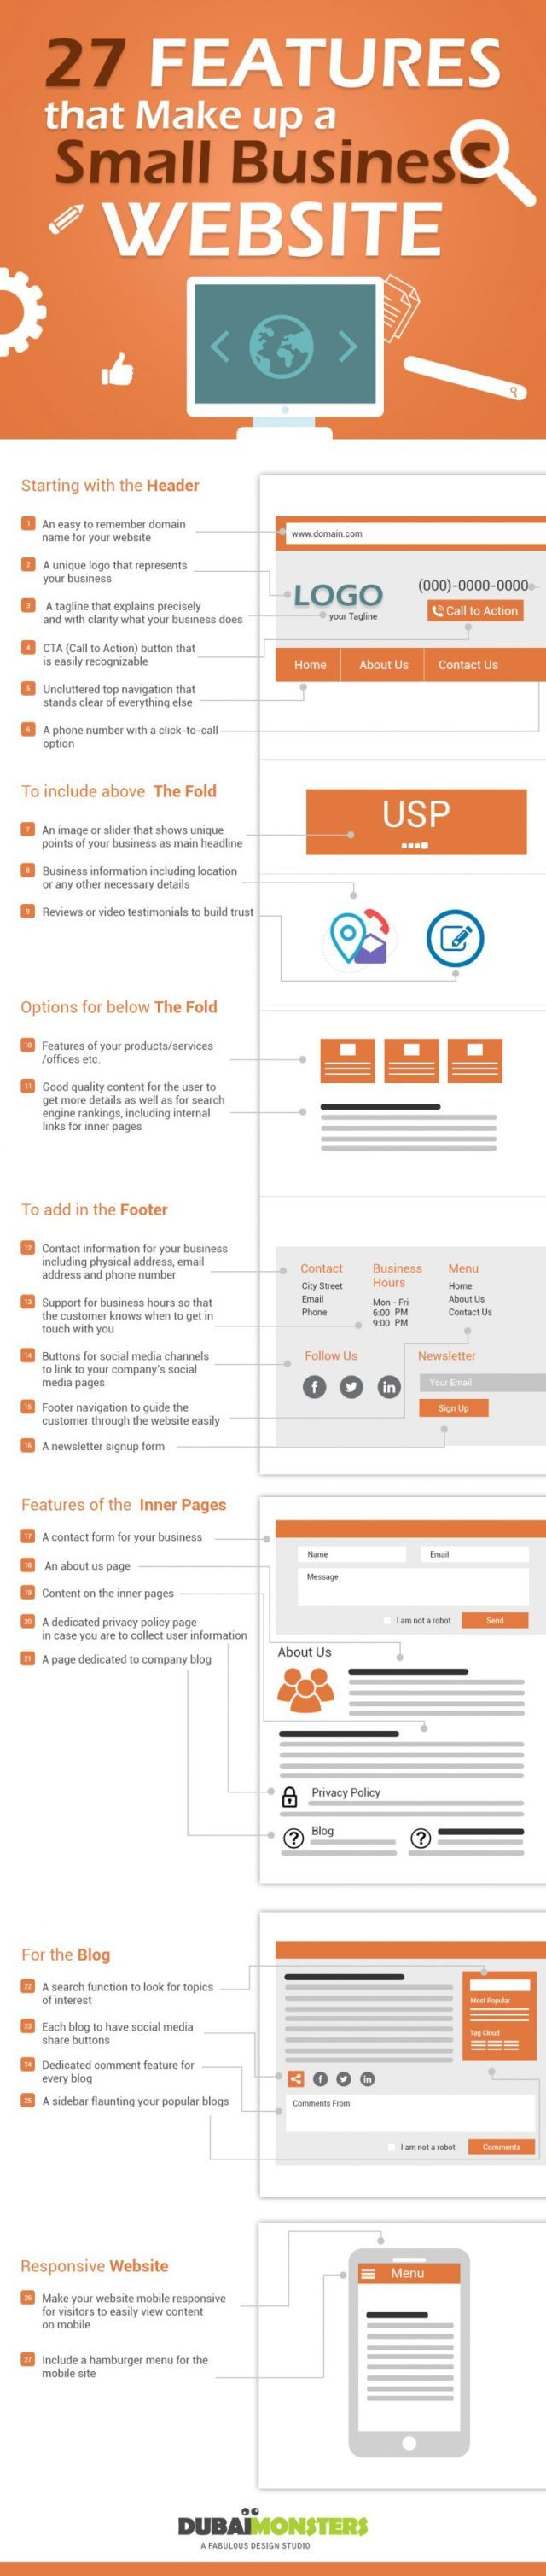 27 Features That Make Up A Small Business Website - #infographic